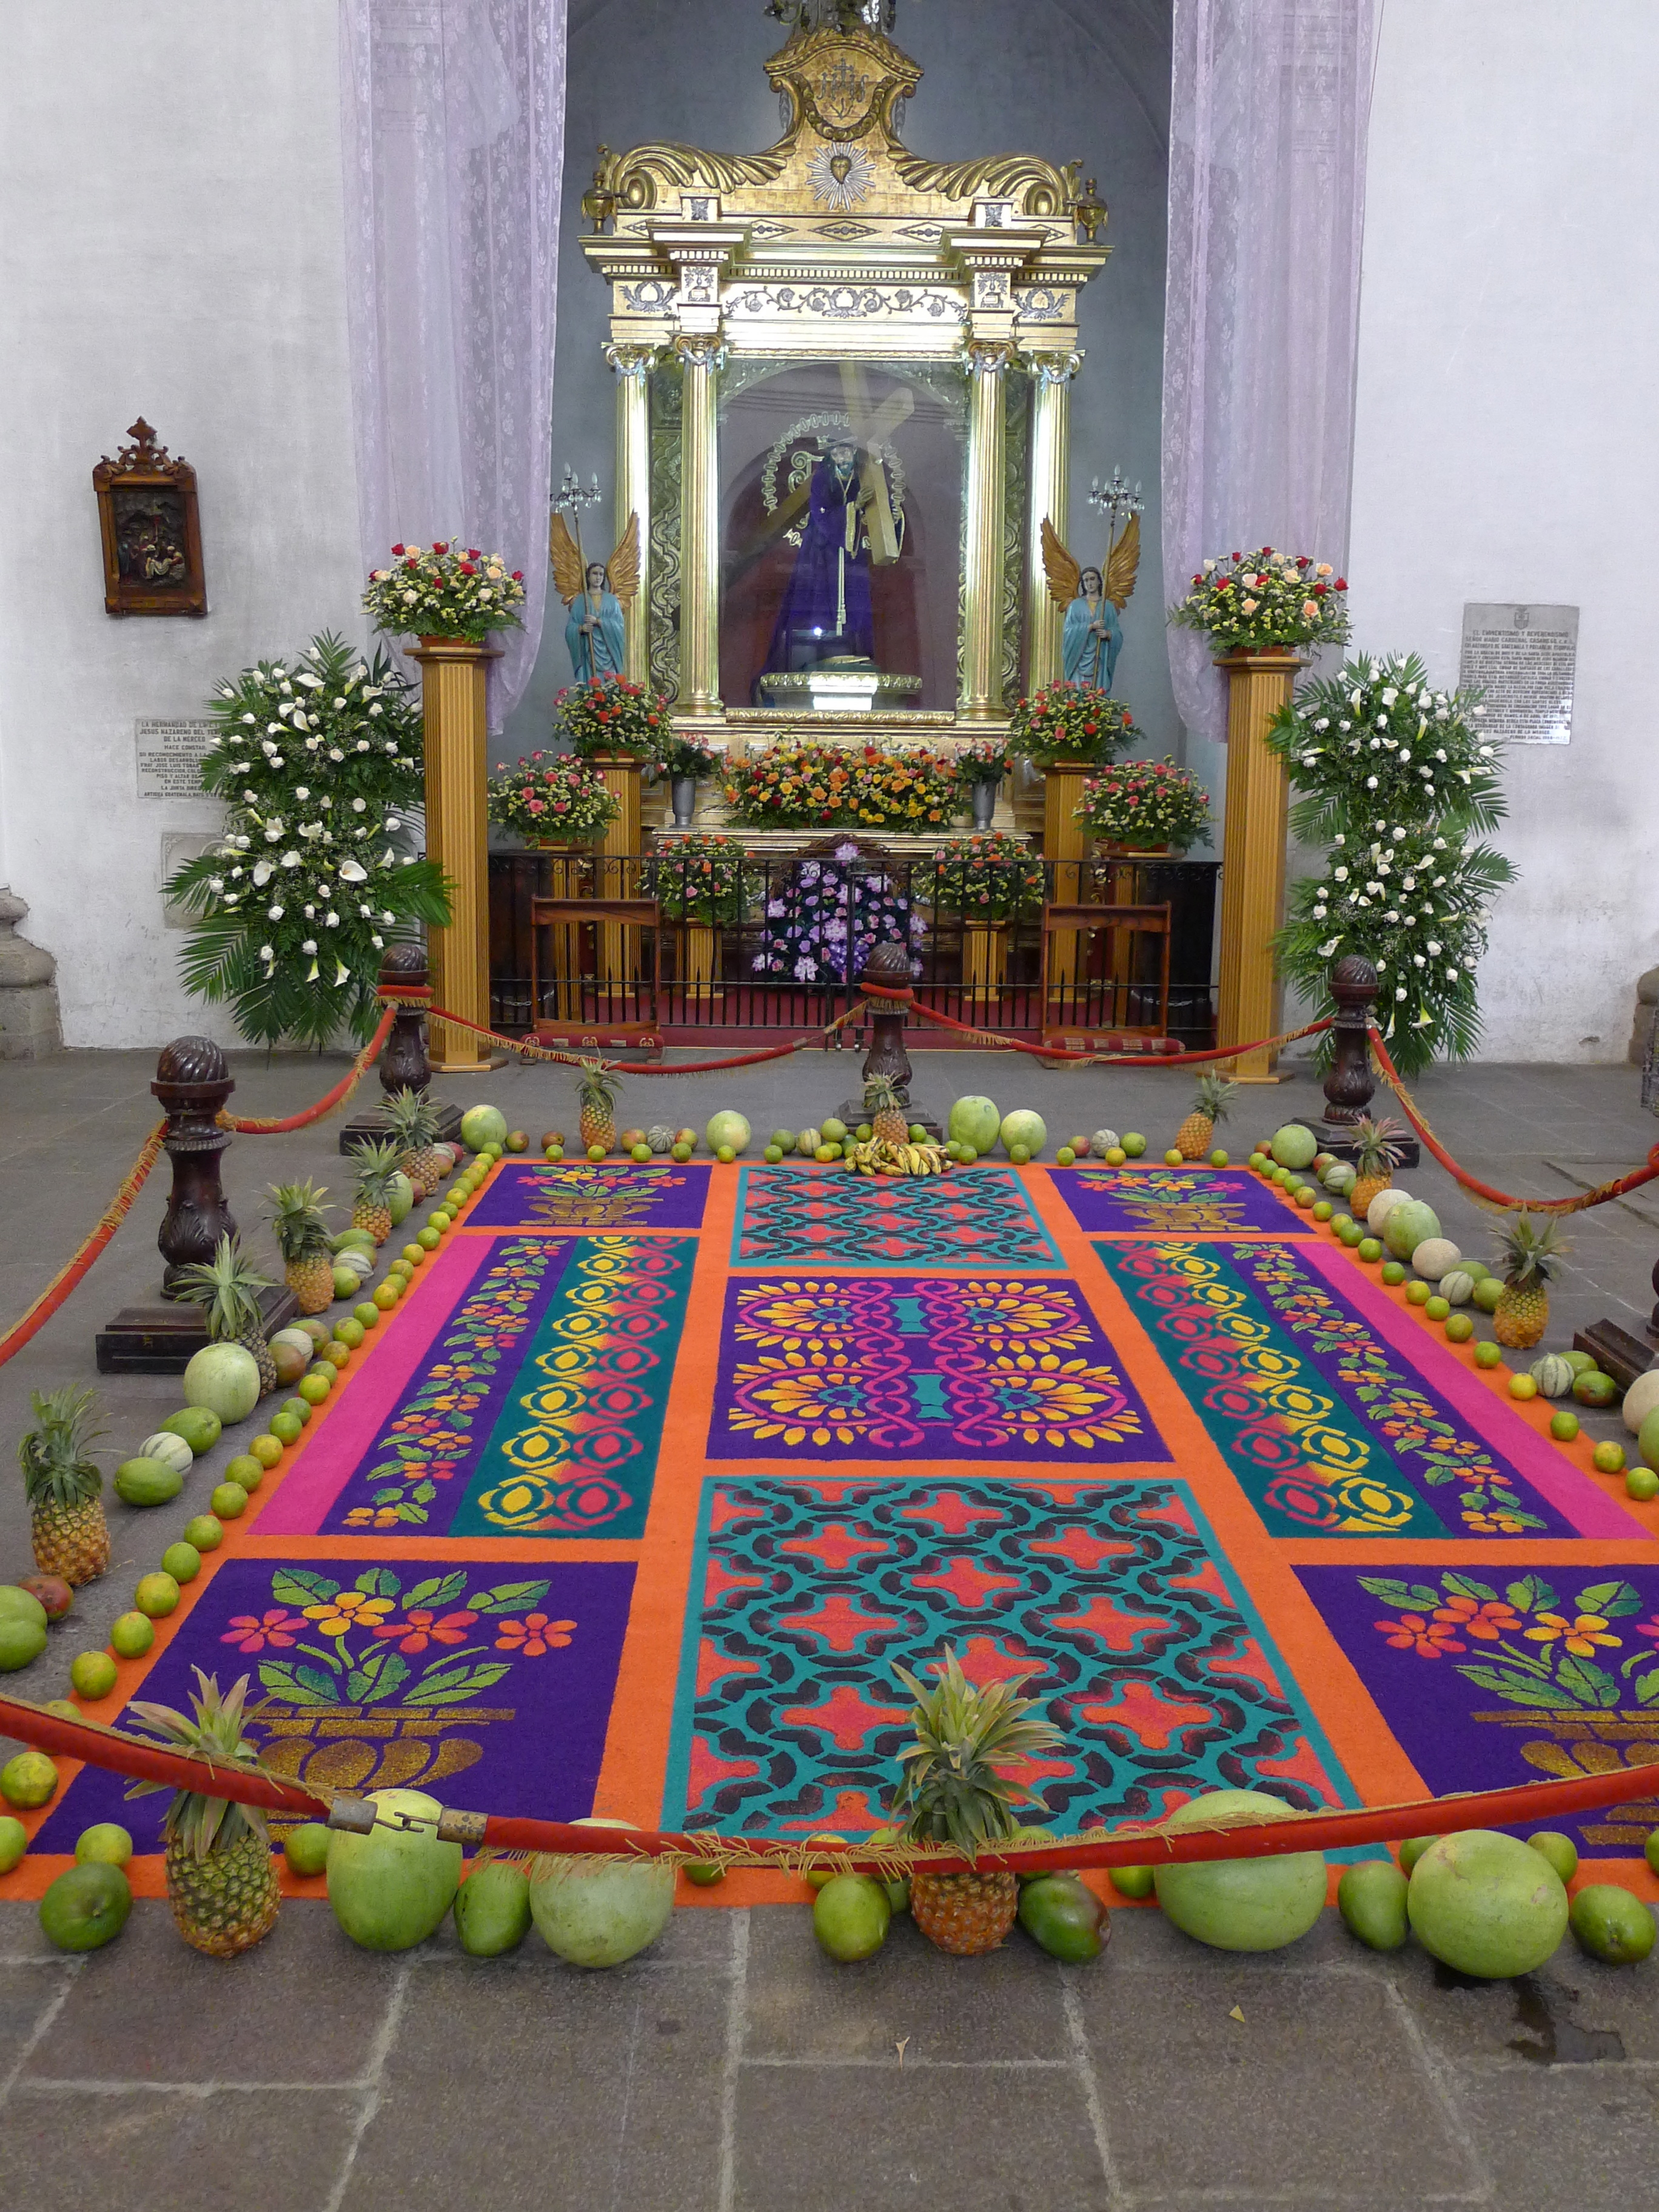 Guatemala s alfombras the thirdeyeworld for Antigua alfombras